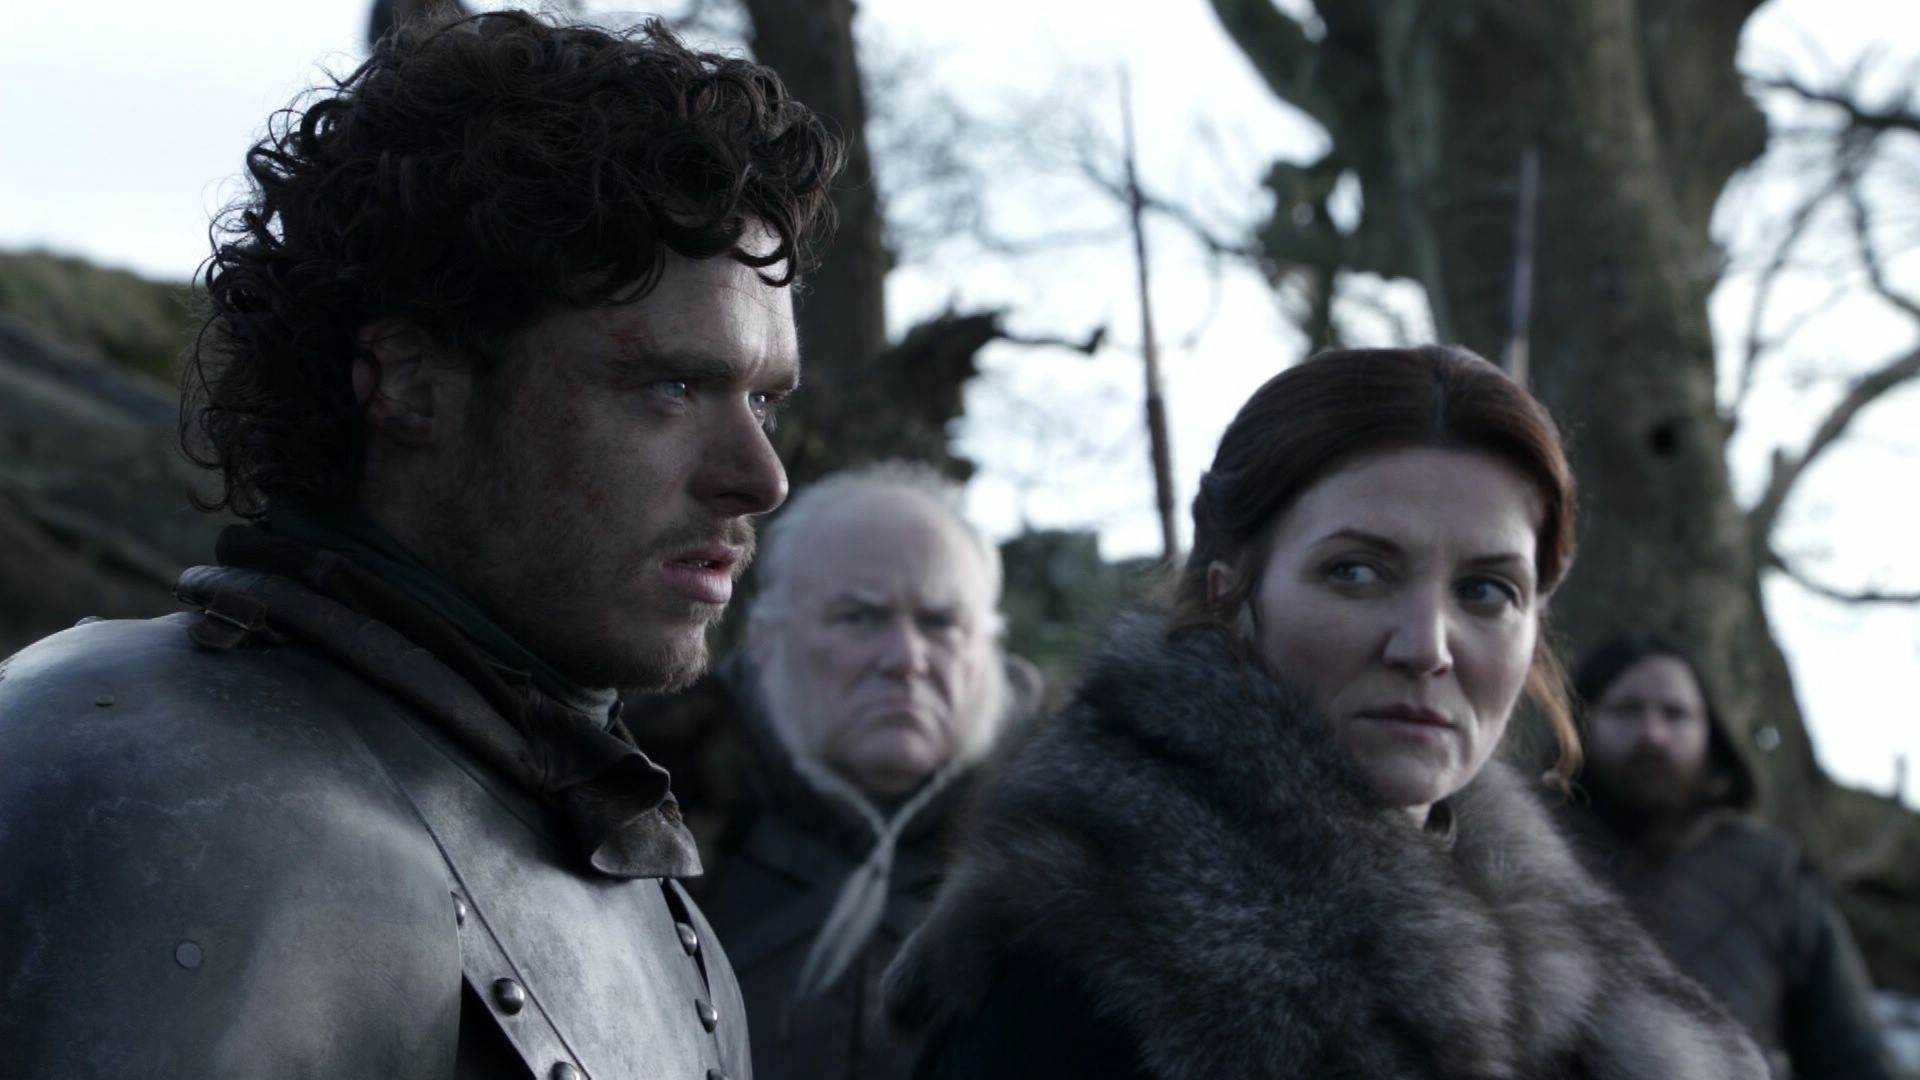 Robb Stark images 1x09 Baelor HD wallpaper and background